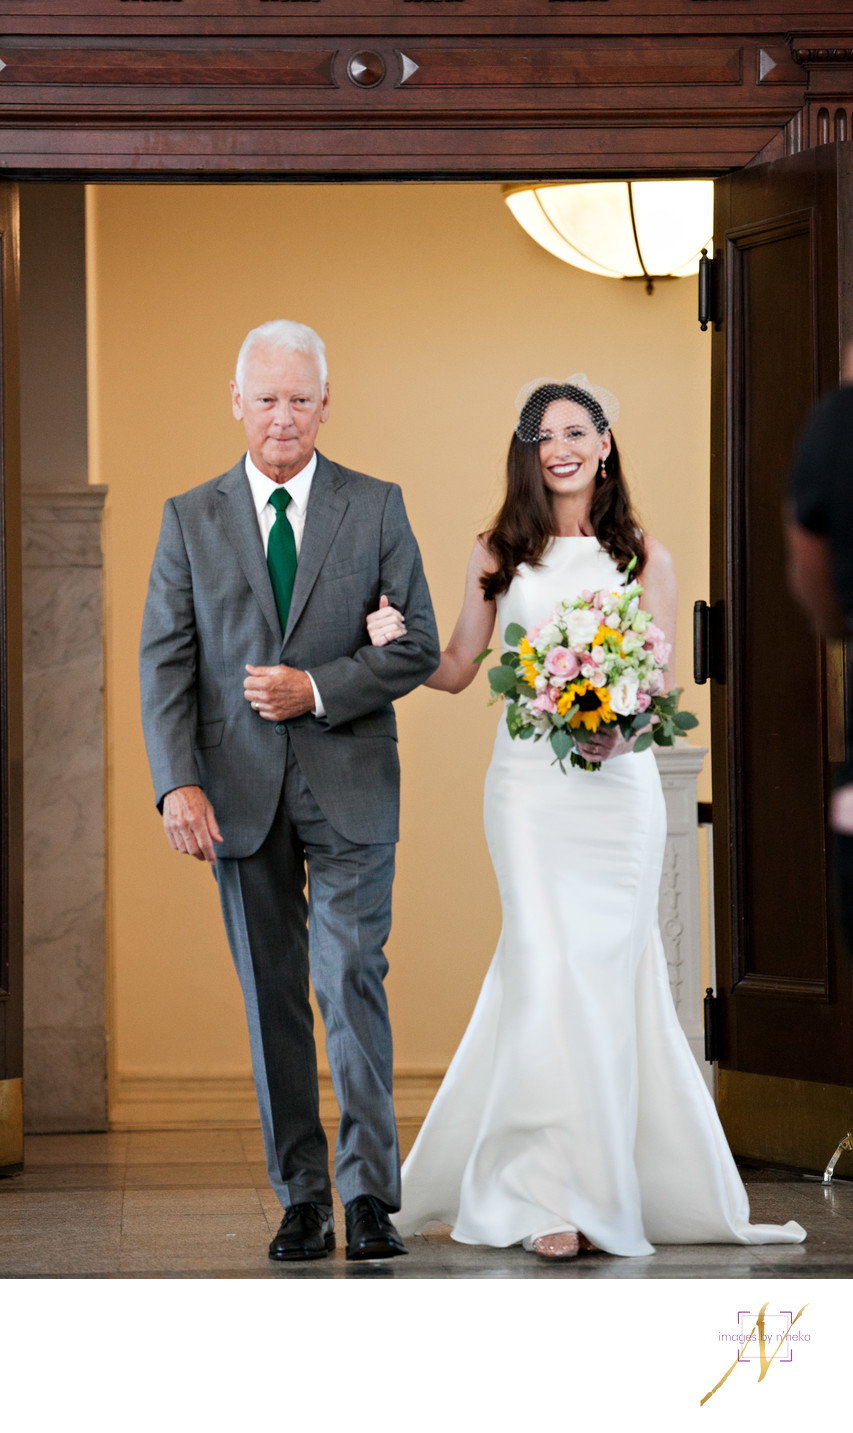 dekalb historic courthouse wedding bride